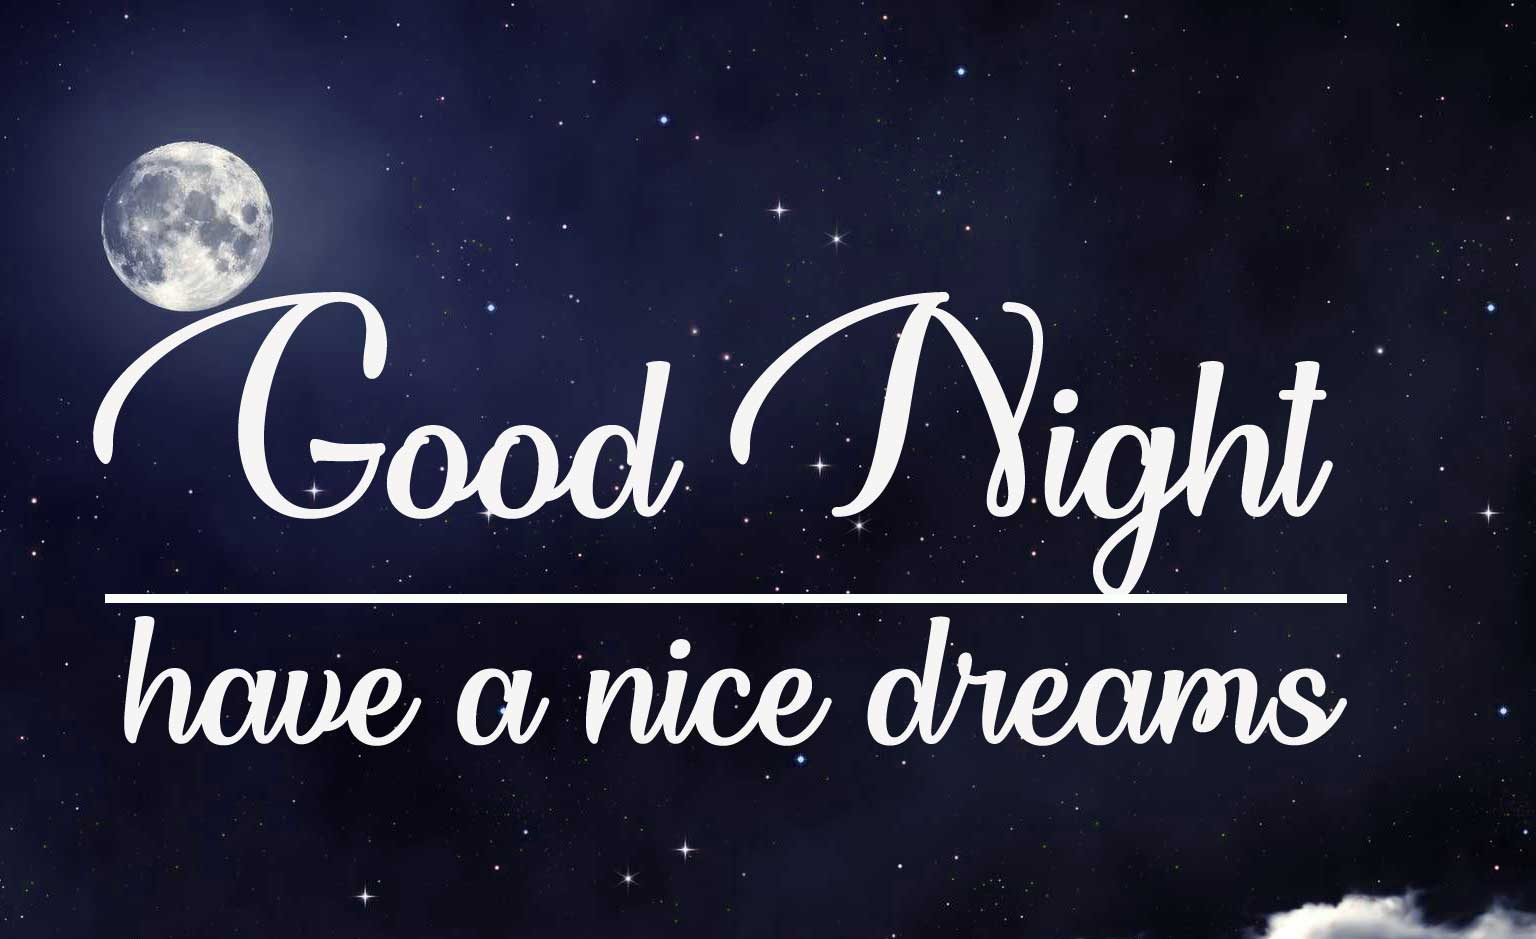 Free Full HD Beautiful good night images Pics Download